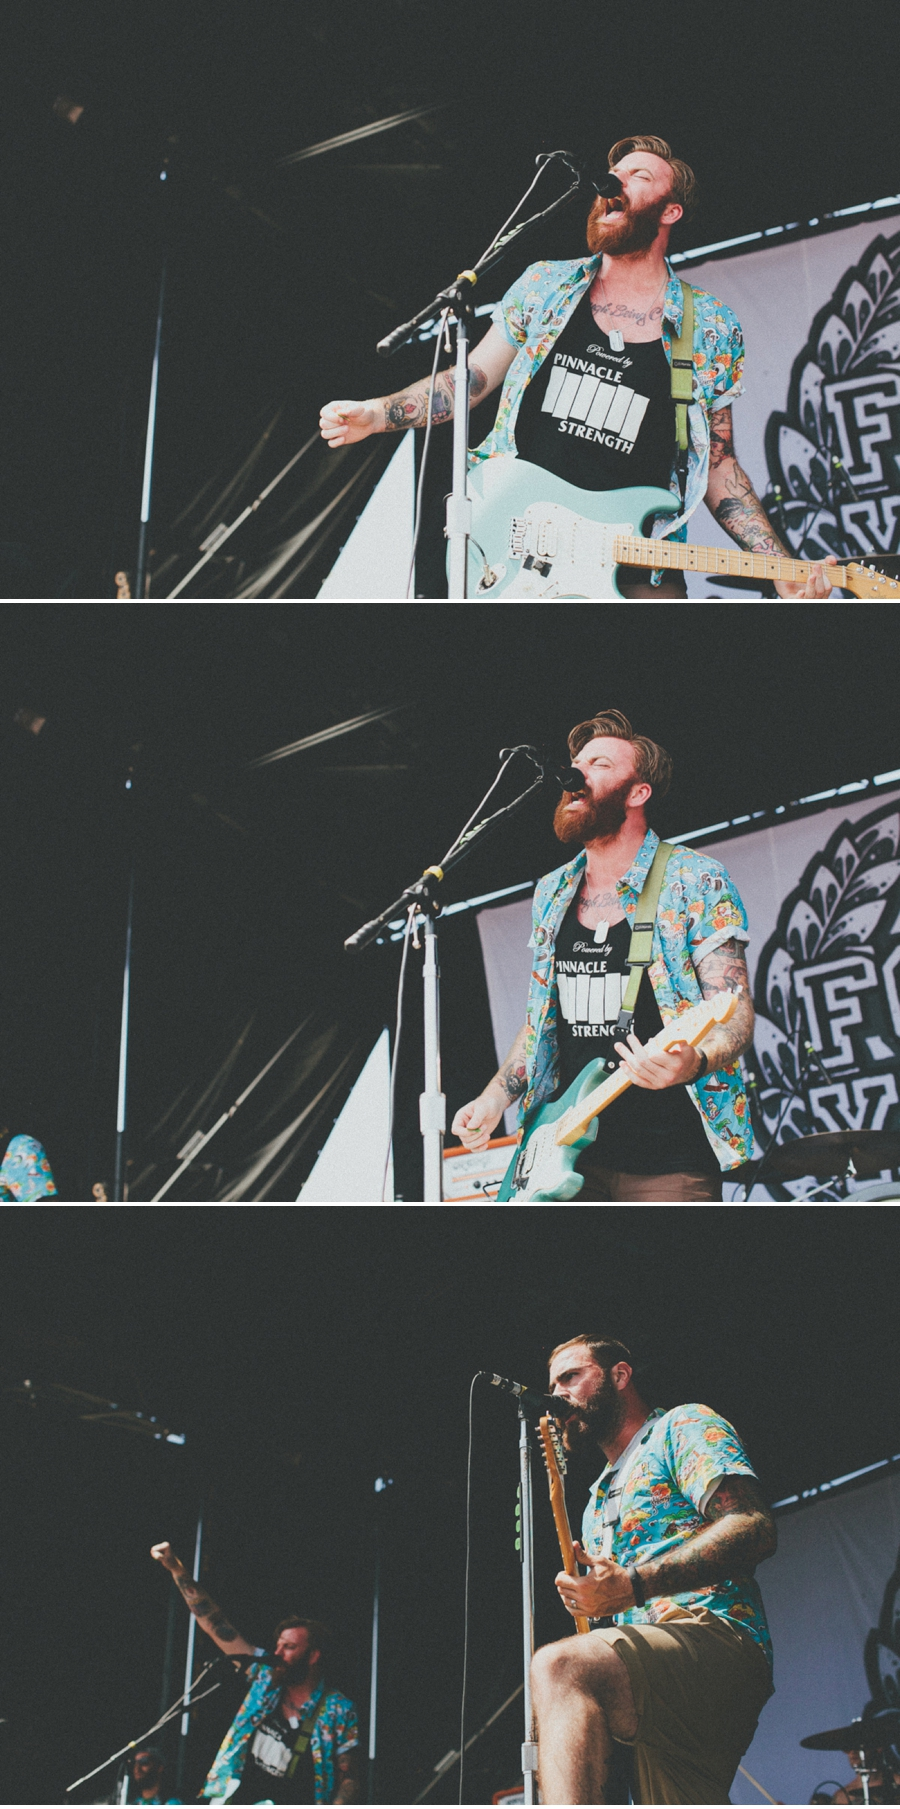 Alan Day and Dan O'Connor of Four Year Strong perform on the Kia Soul Stage at Vans Warped Tour 2012 in Dallas, Texas.